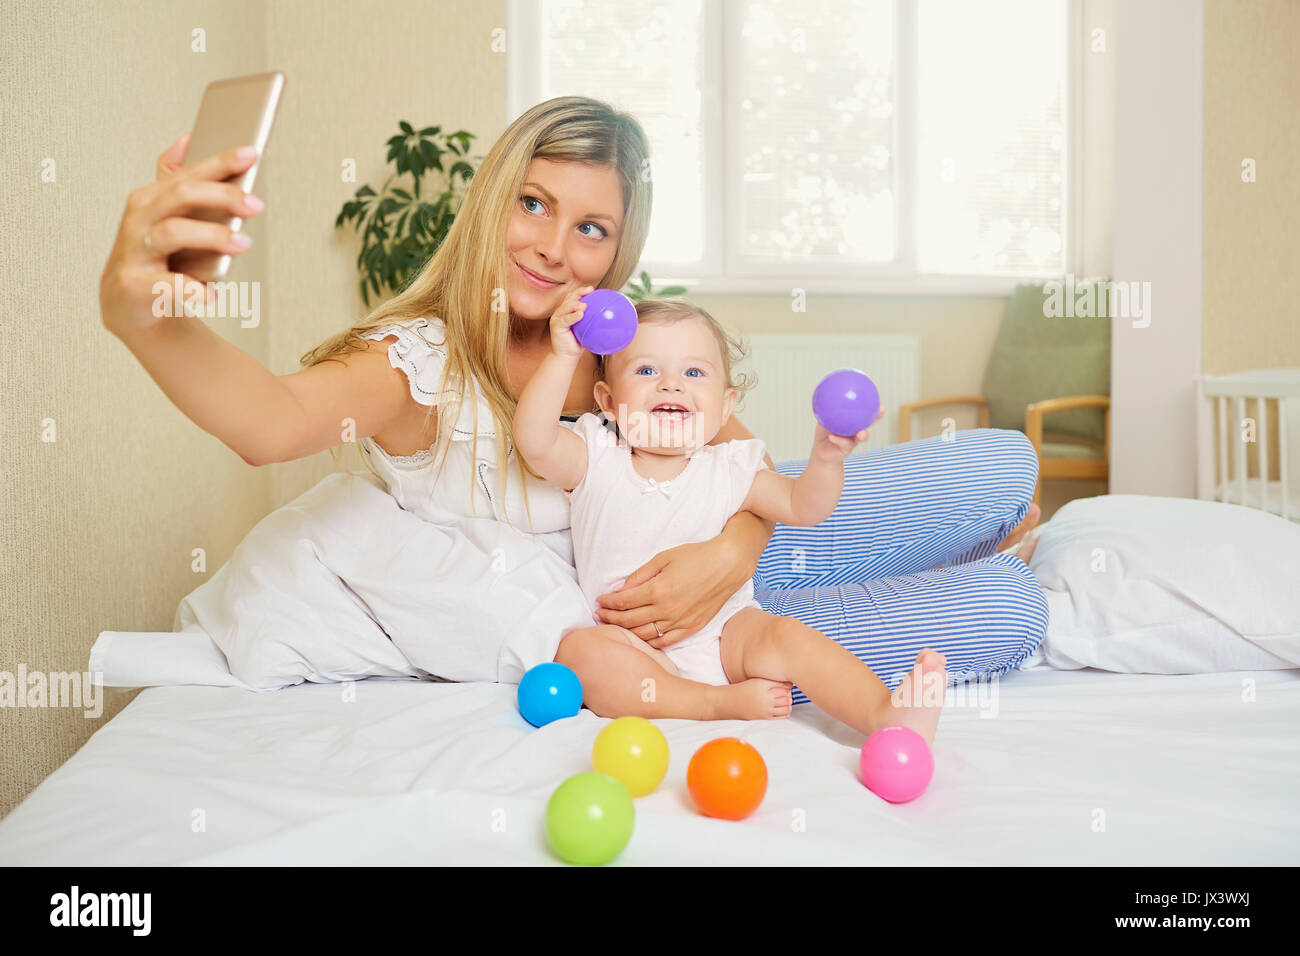 Mom makes a photo on the phone with the baby in the room. Salfie - Stock Image